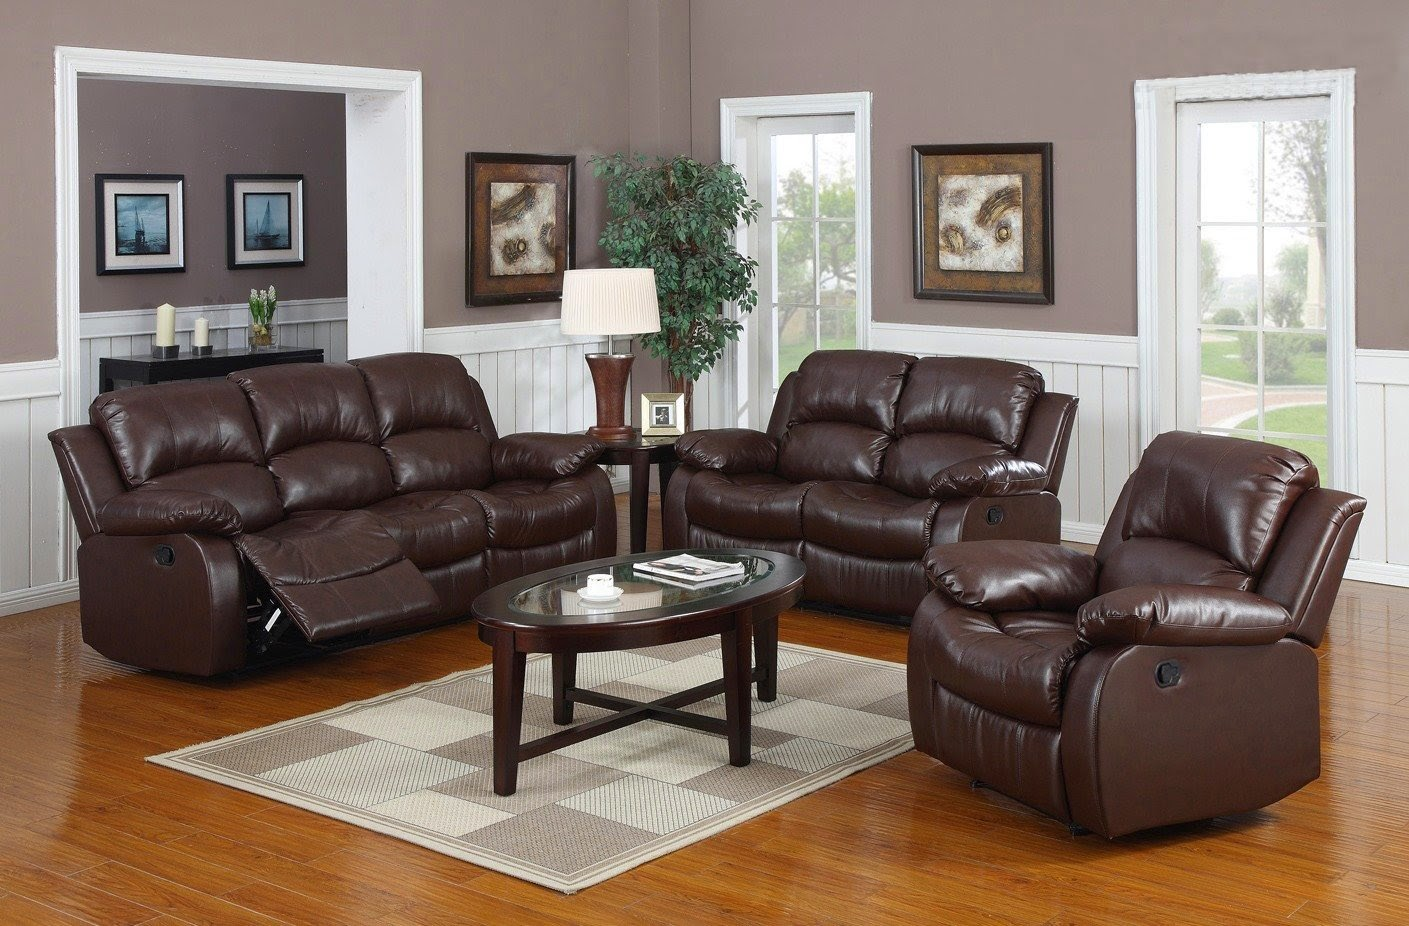 Cheap Reclining Sofas Sale Leather Reclining Sofa Costco